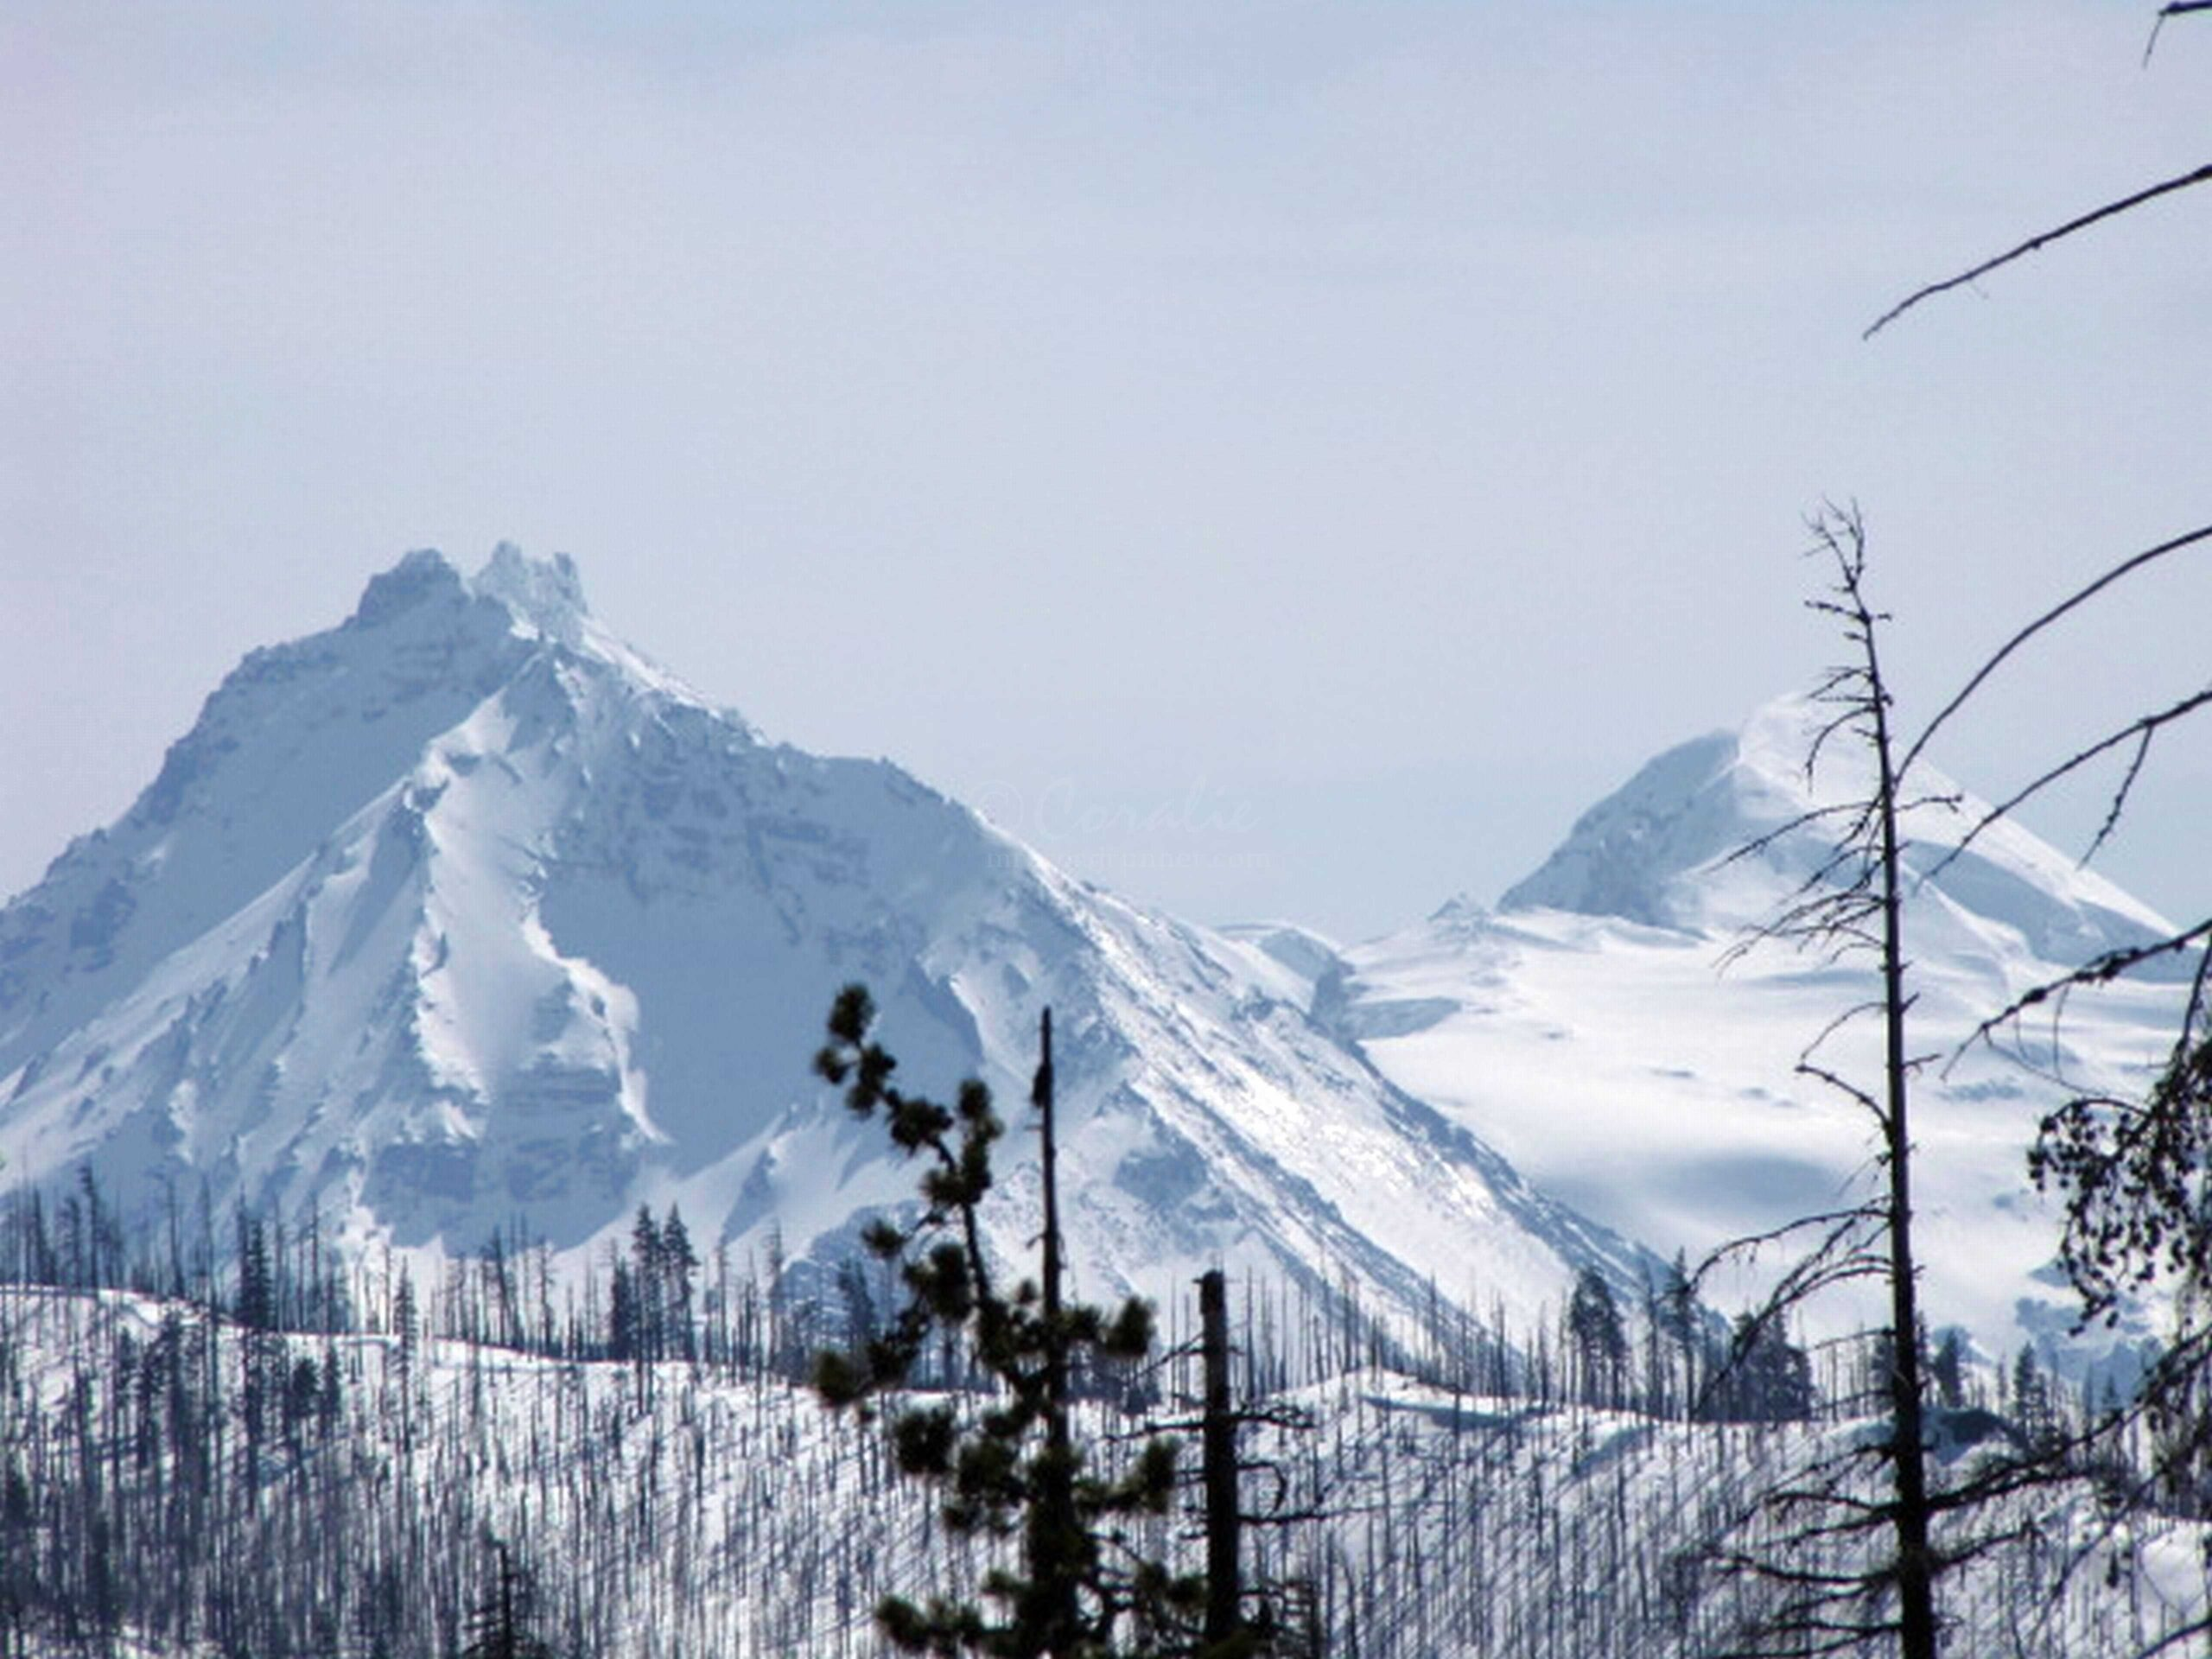 Snow Capped Three Sisters Mountains